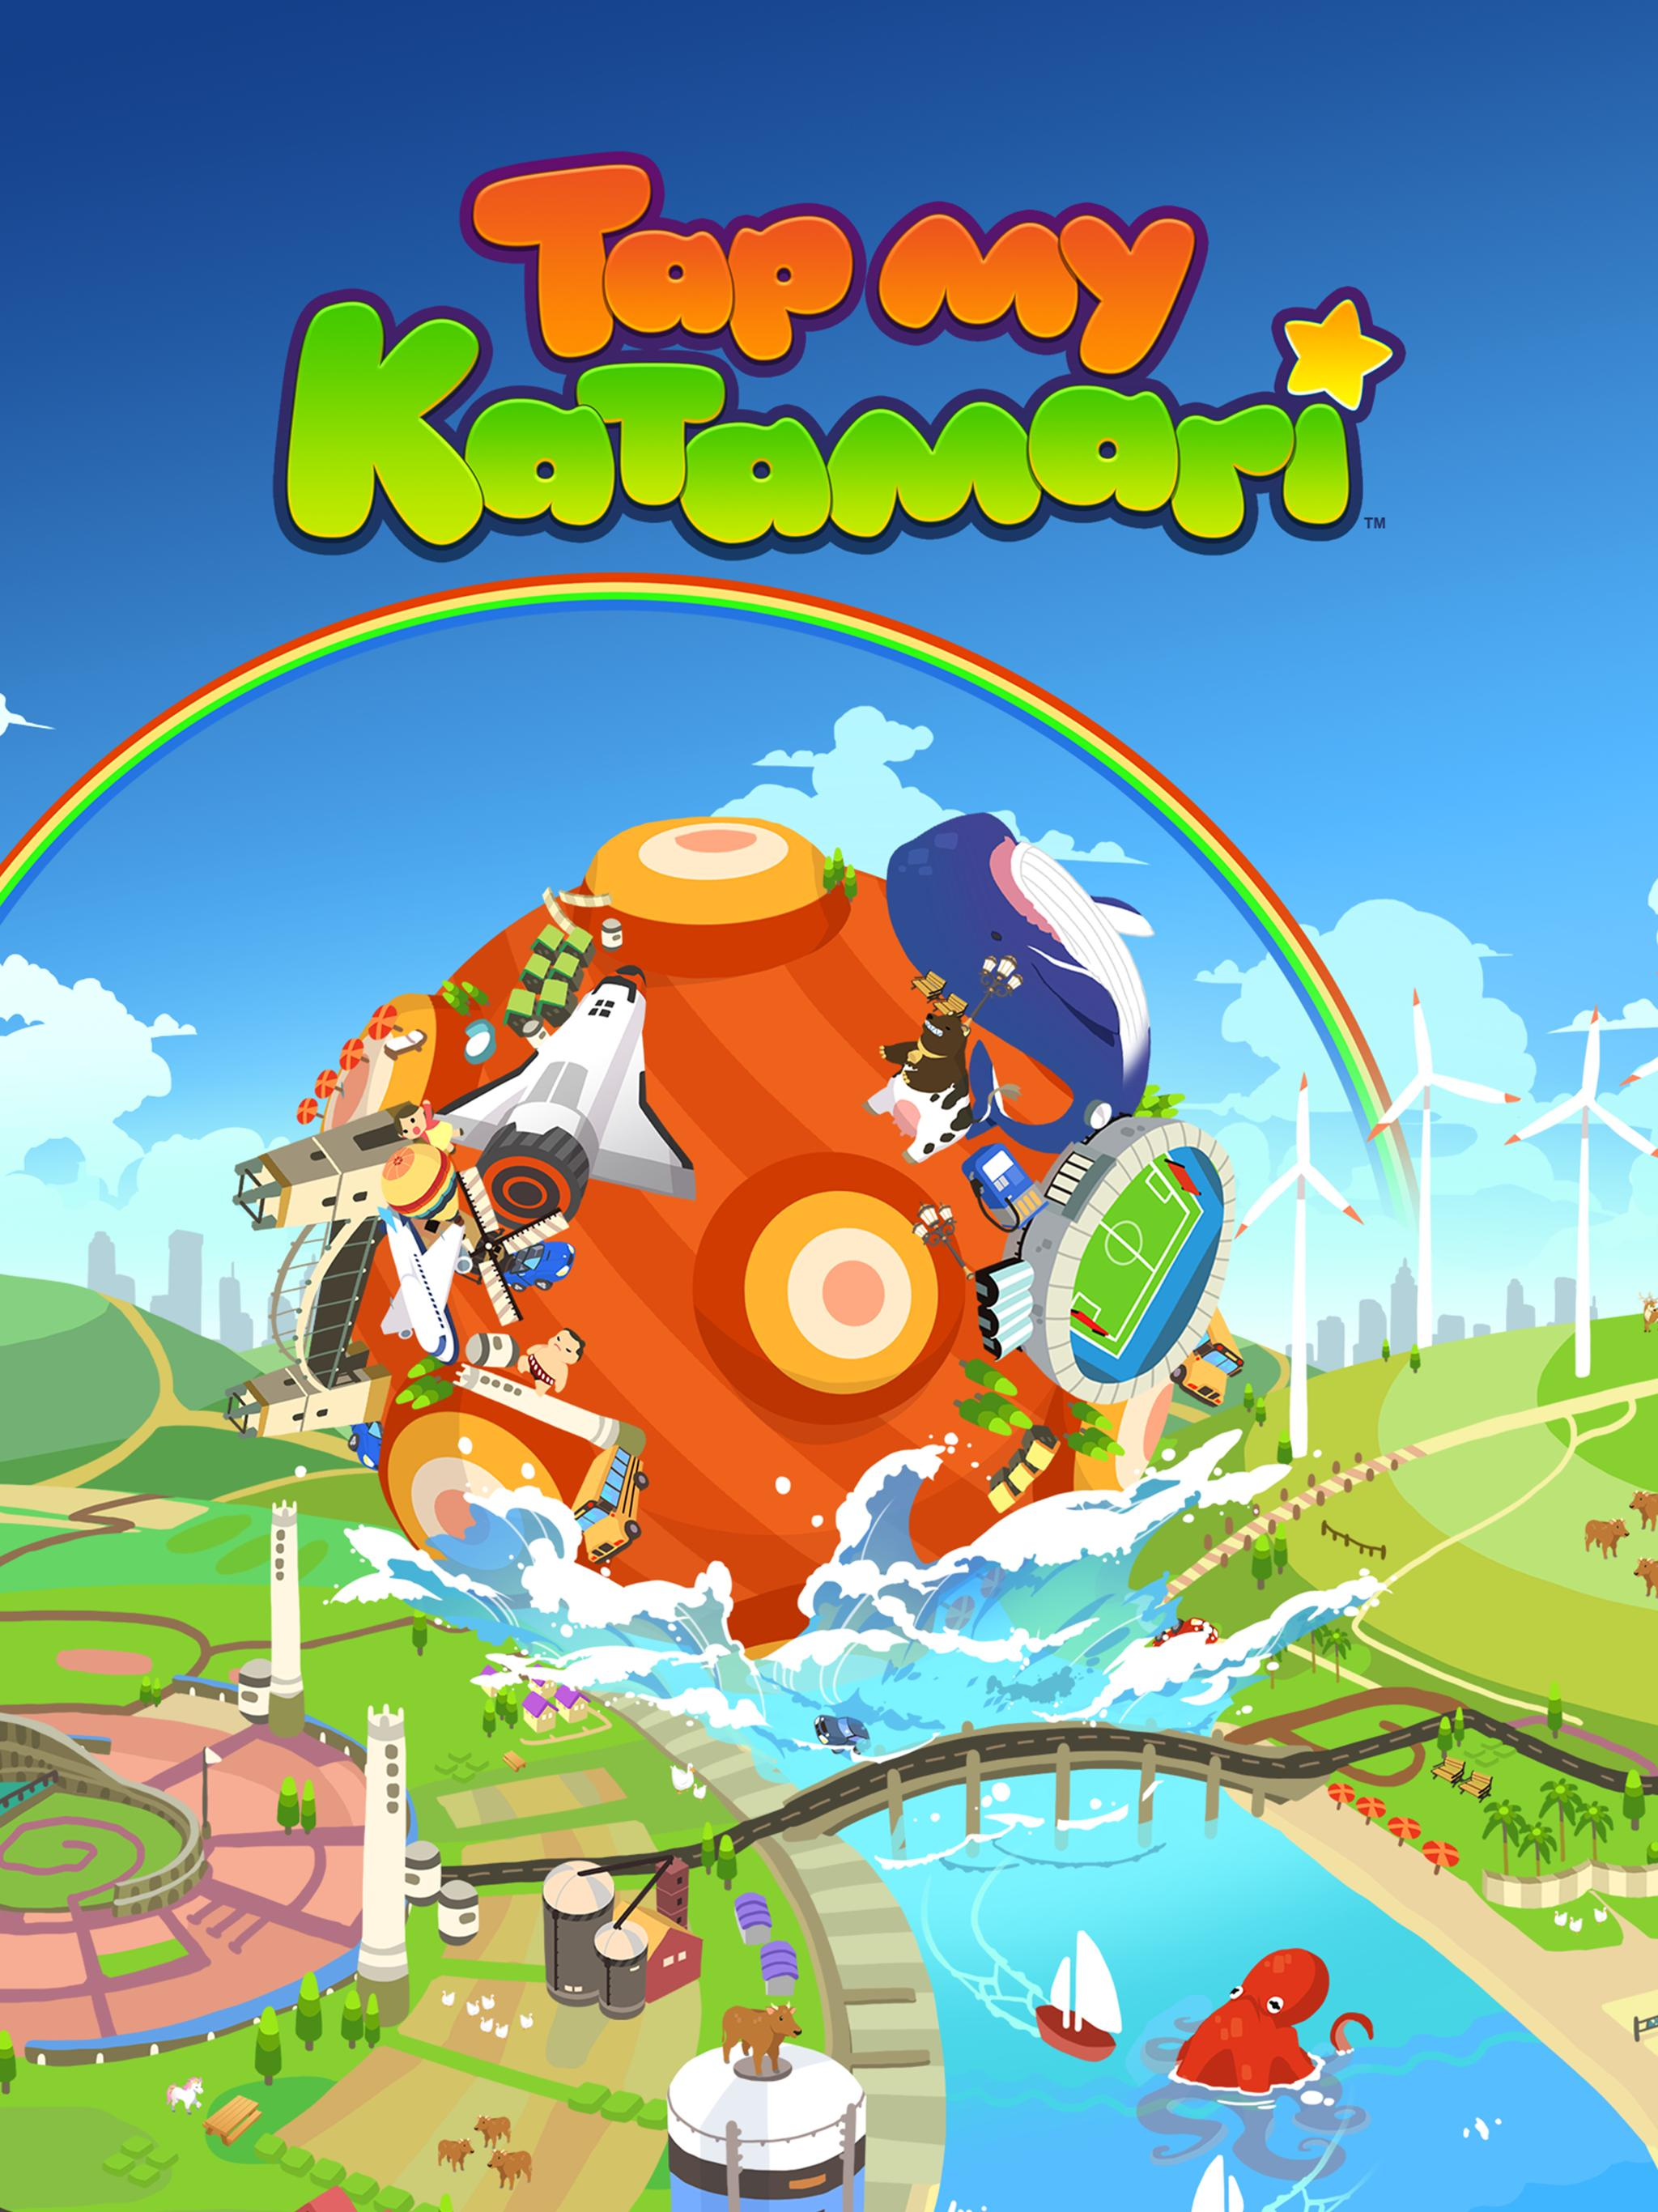 Tap My Katamari - Idle Clicker for Android - APK Download